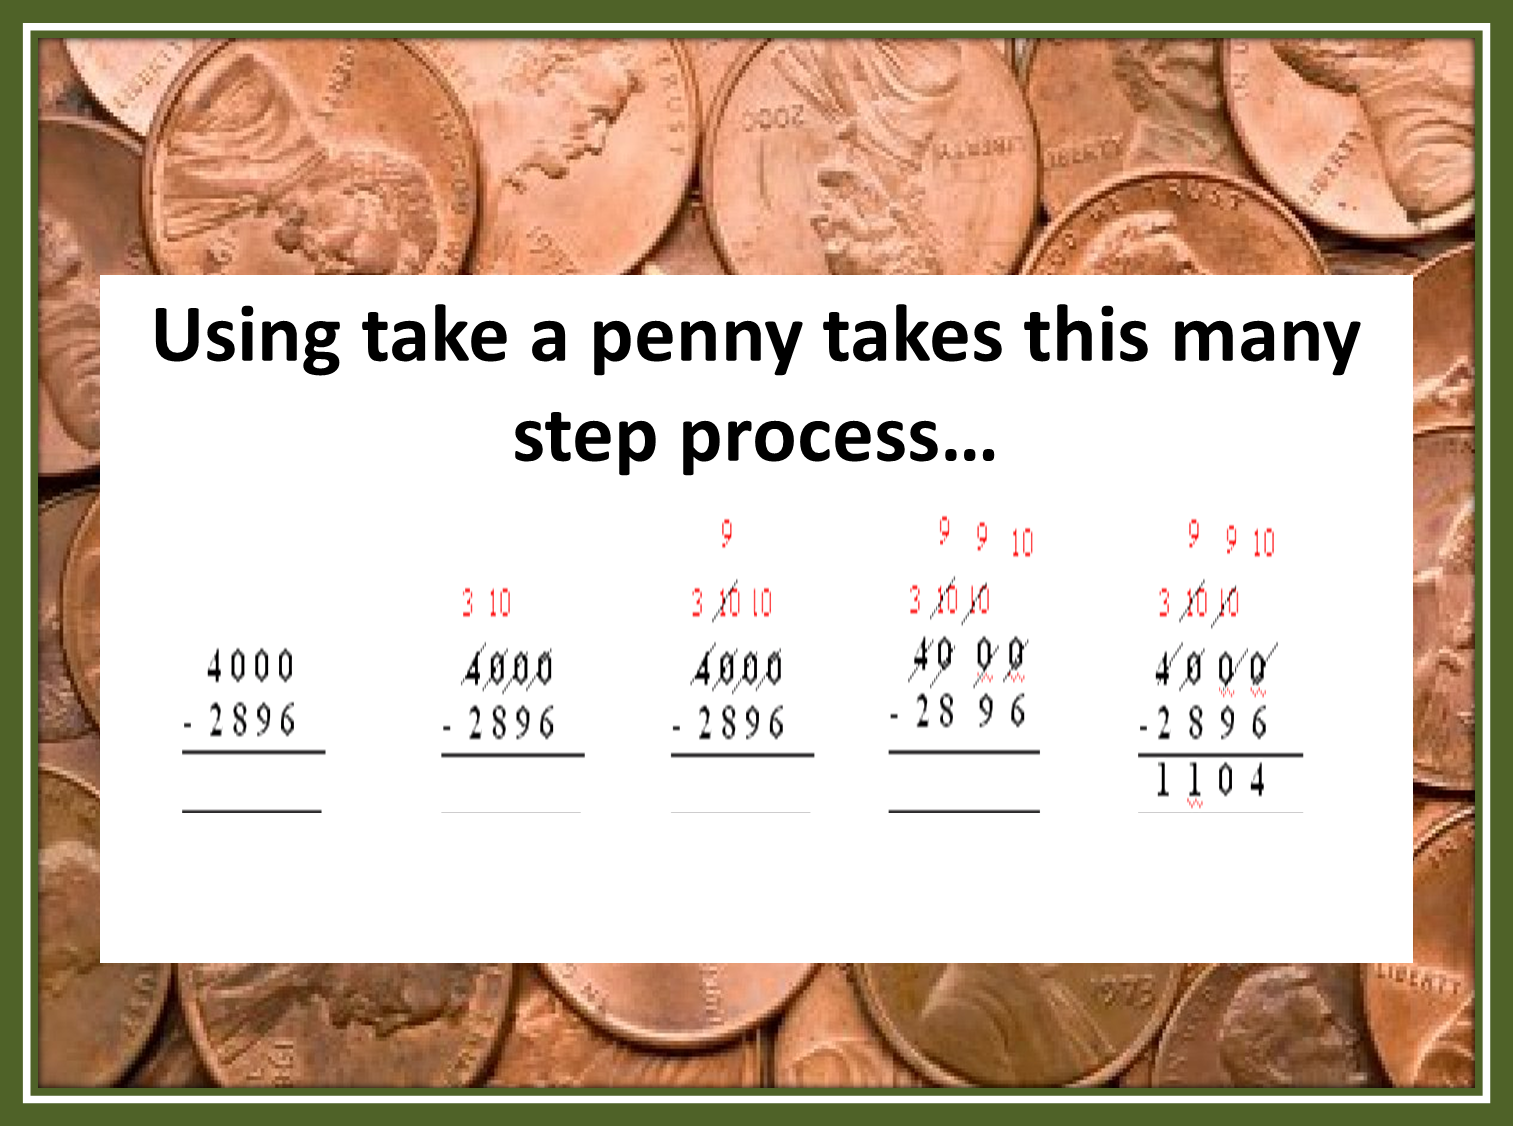 worksheet Time Subtraction tricks of the teaching trade take a penny and regrouping out it works every time no matter how many zeros you have reason is quite simple when are subtracting two nu